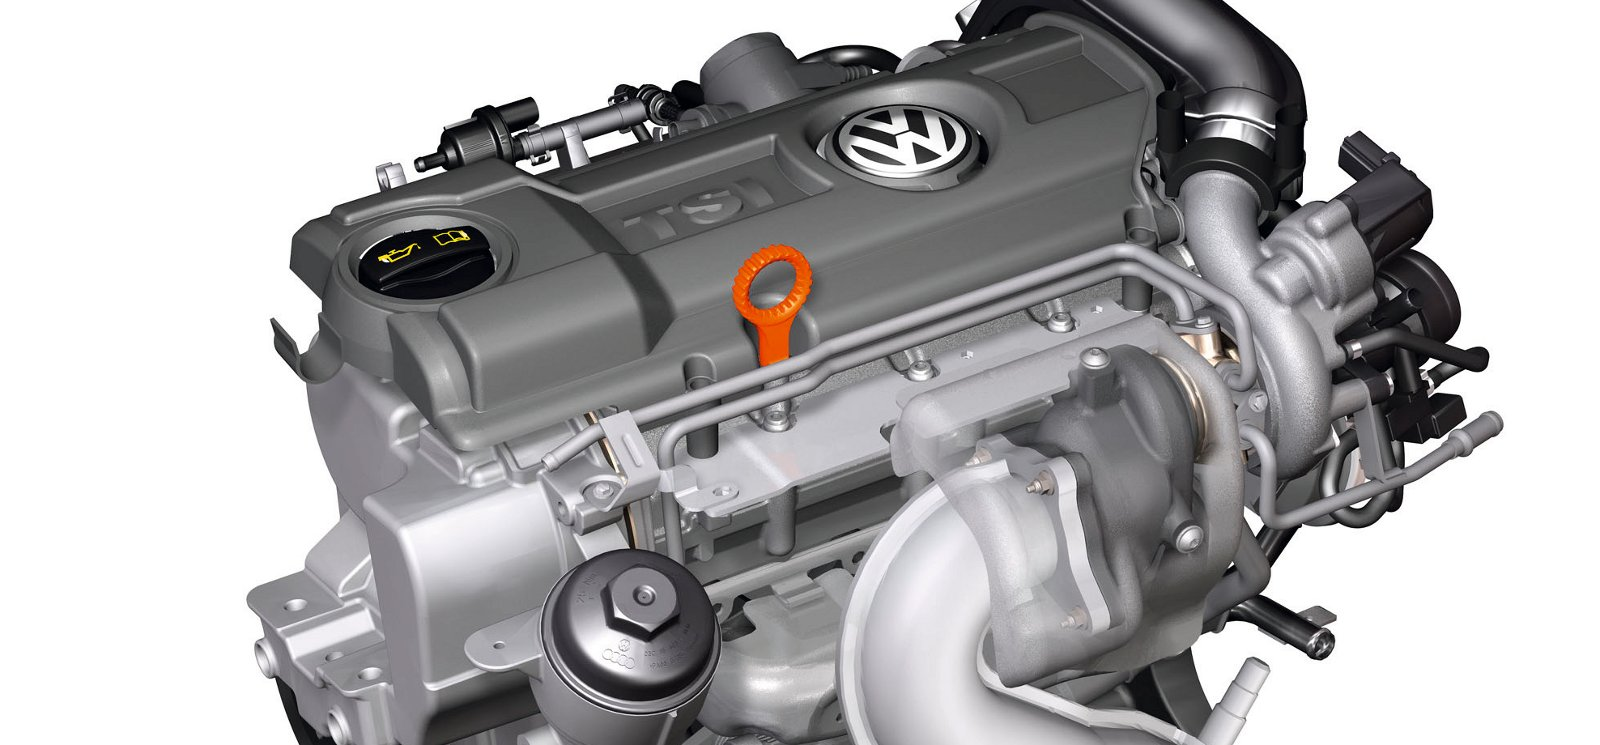 Volkswagen Looking To Build Formula 1 'World Engine'?